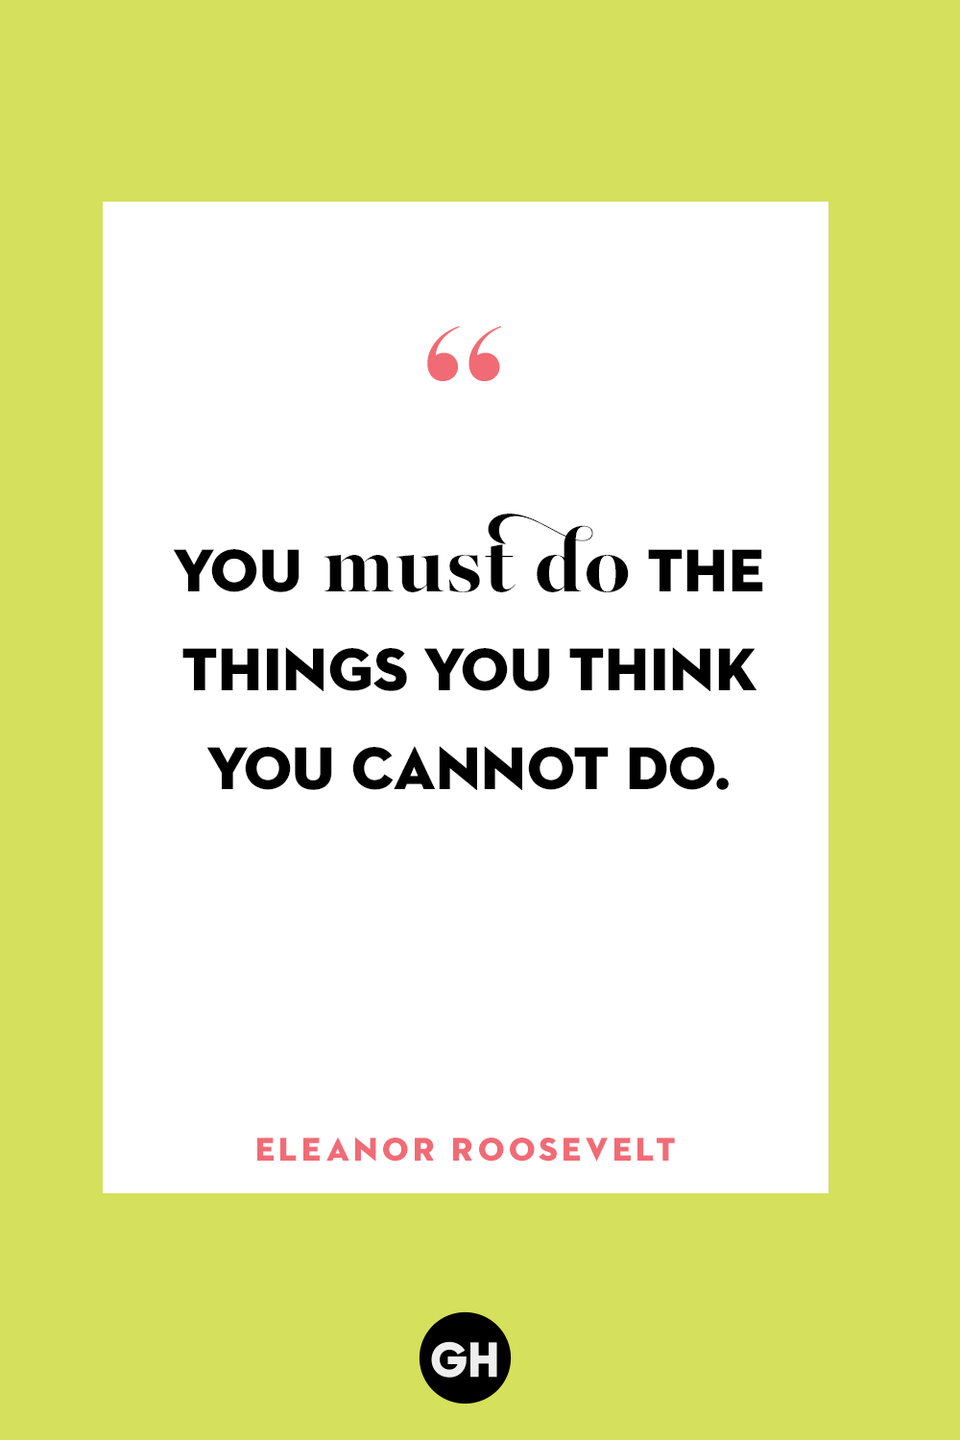 <p>You must do the things you think you cannot do. </p>